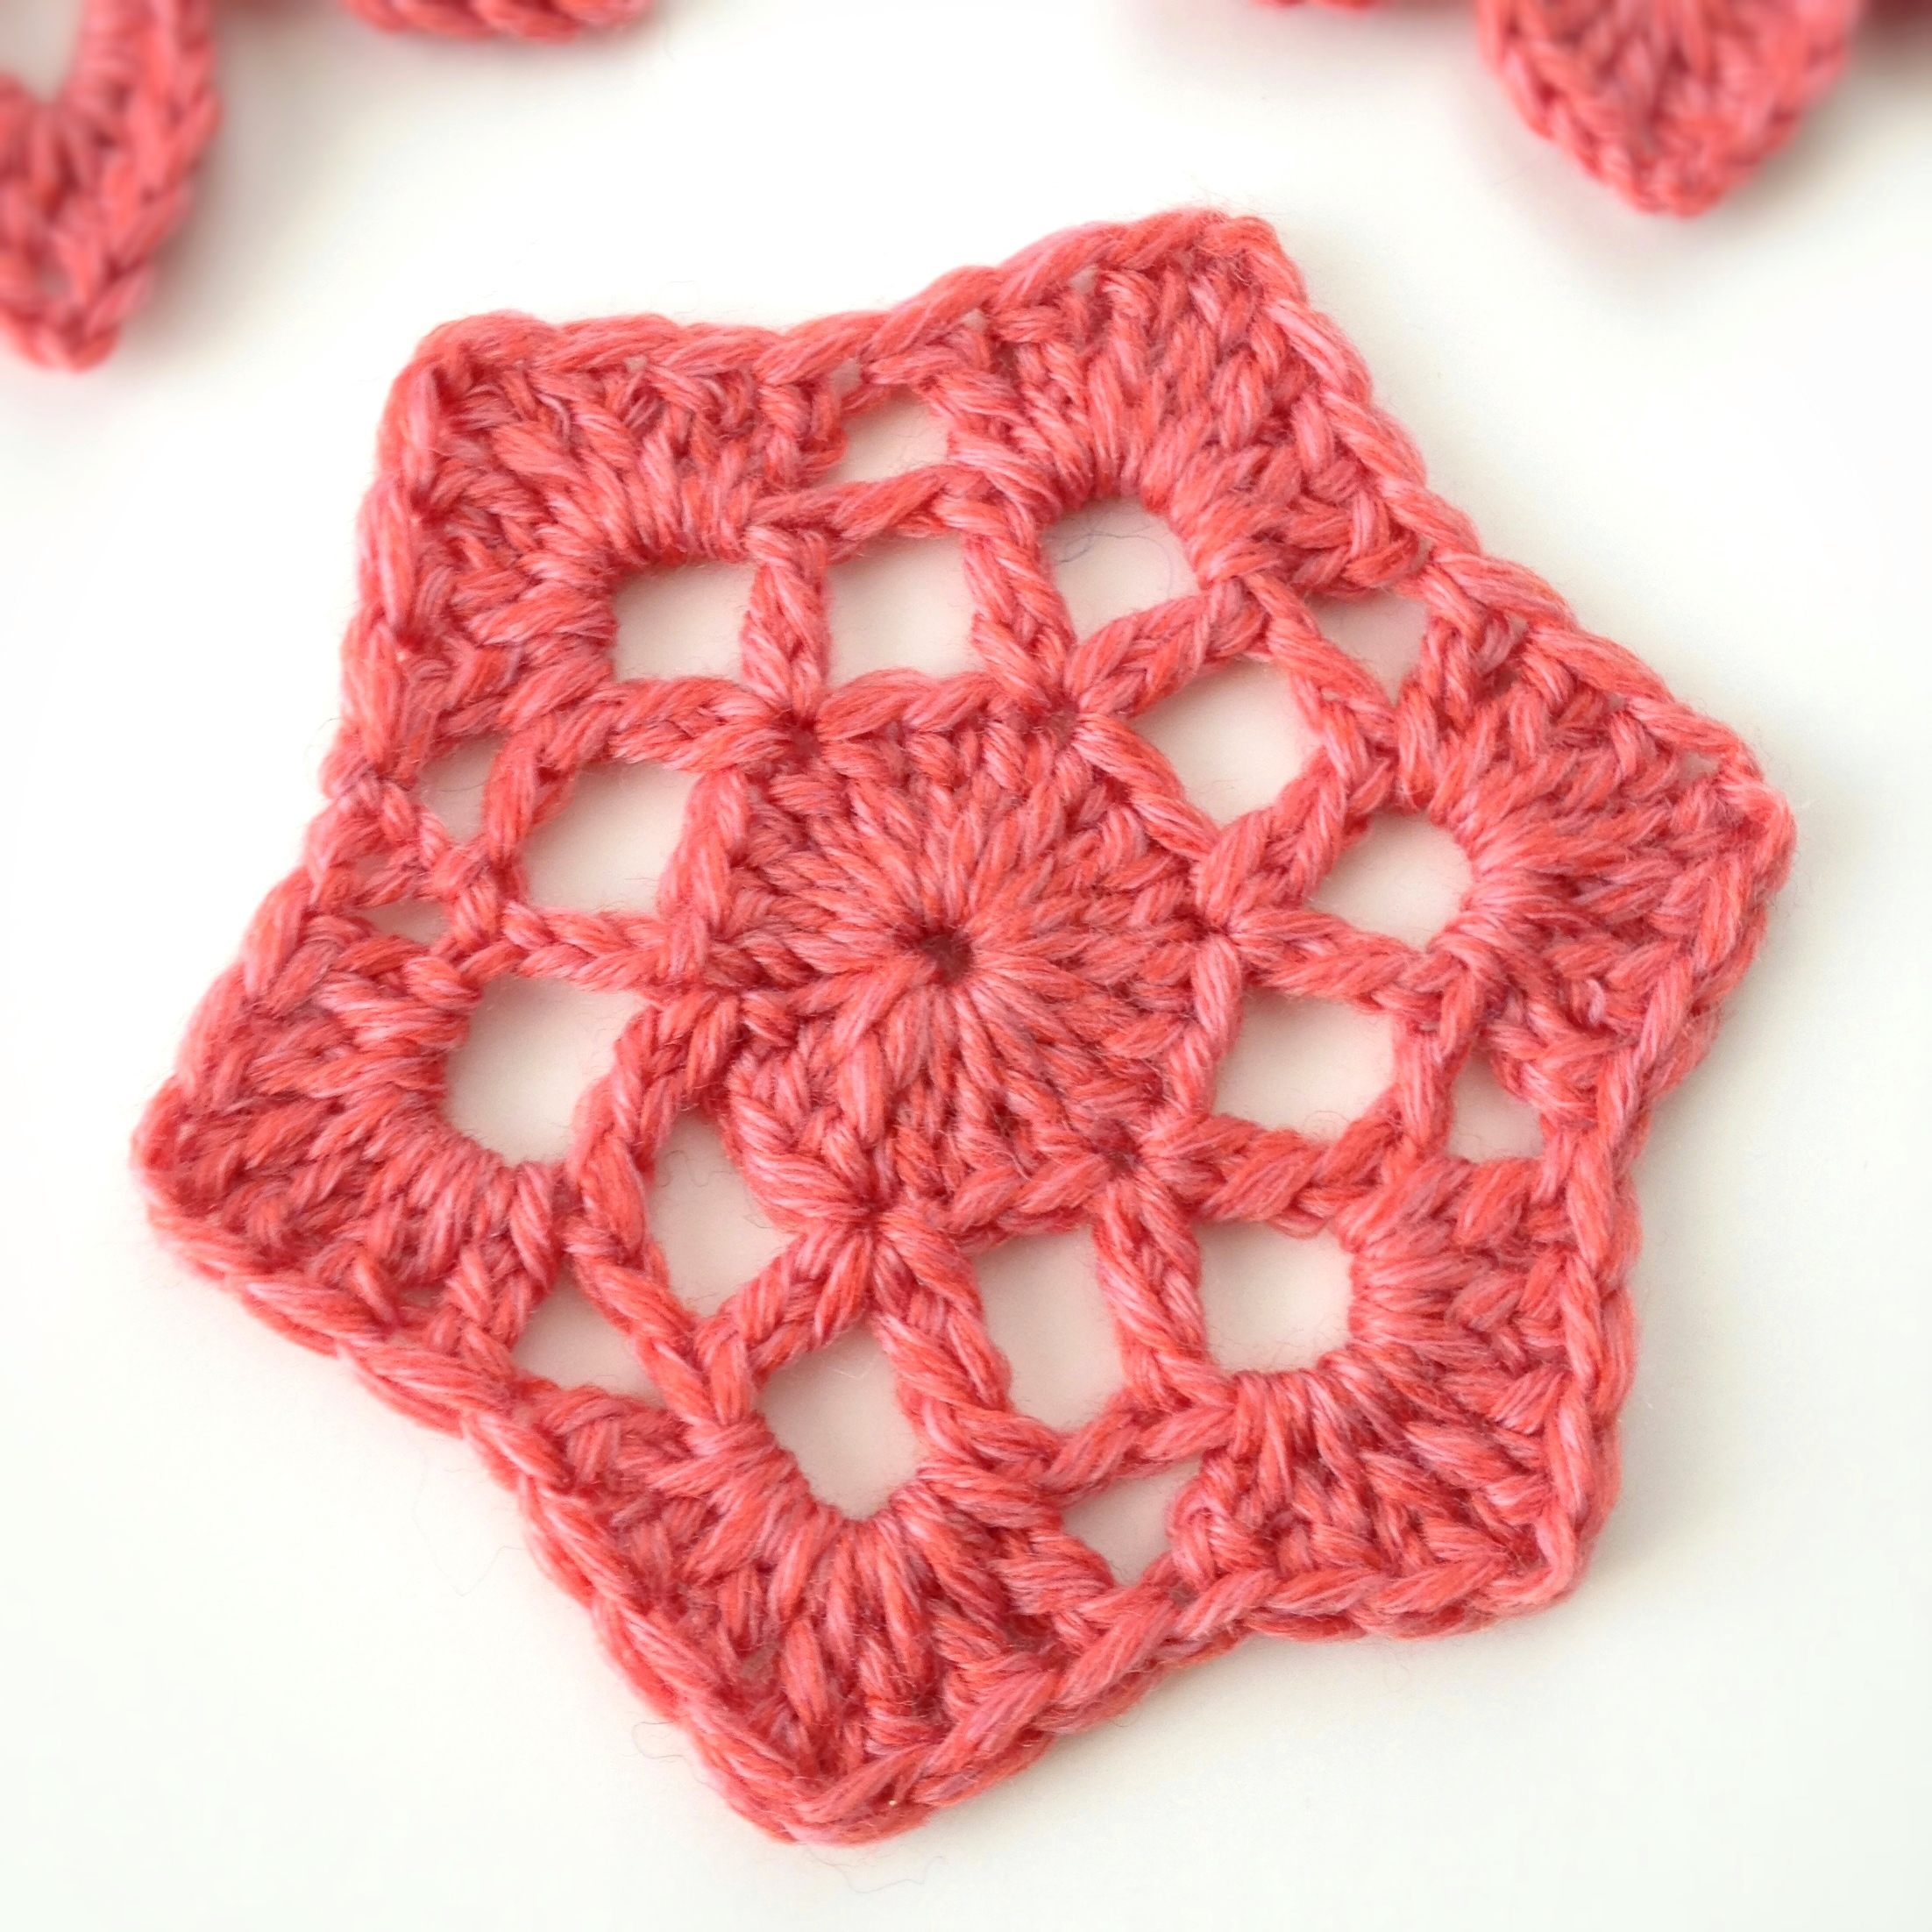 What To Crochet : Crochet motif #53 from ?Beyond the Square Crochet Motifs?